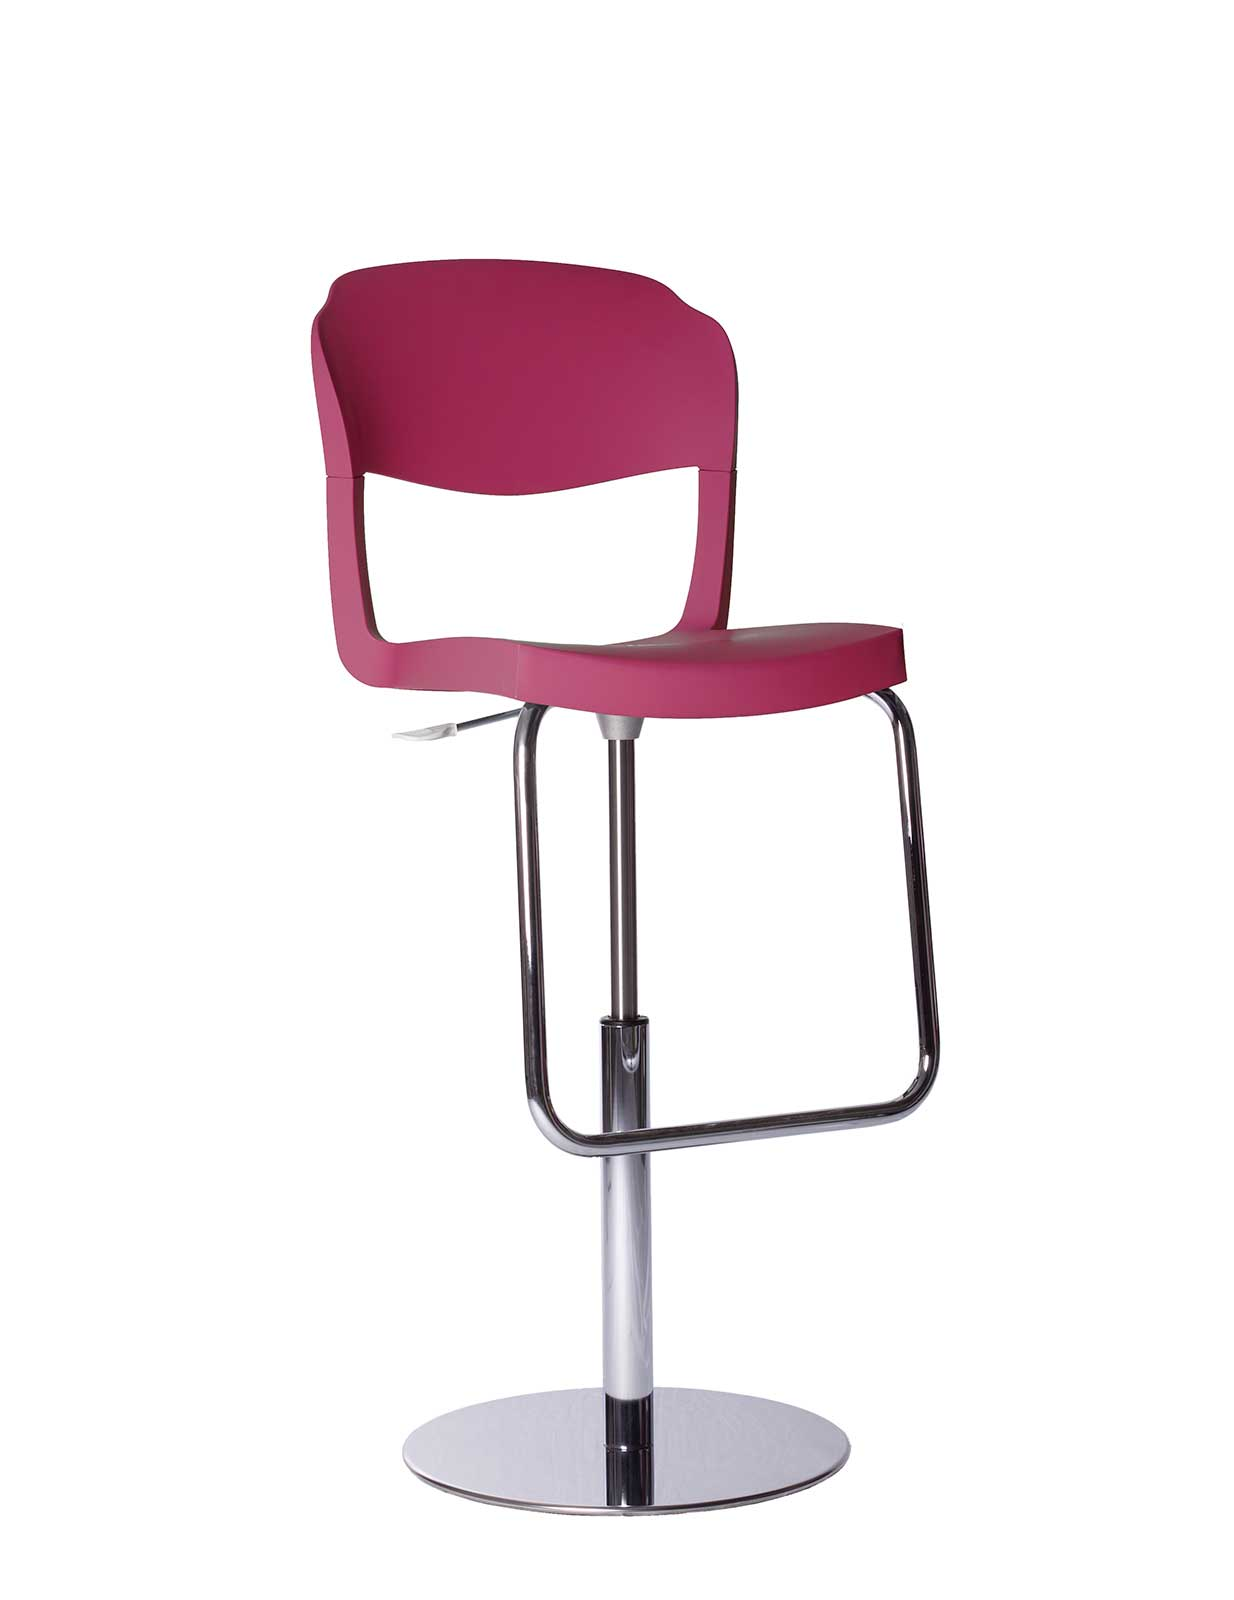 Chrome & Polypropylene Bar Stool with Back | Shop Online - Italy ...